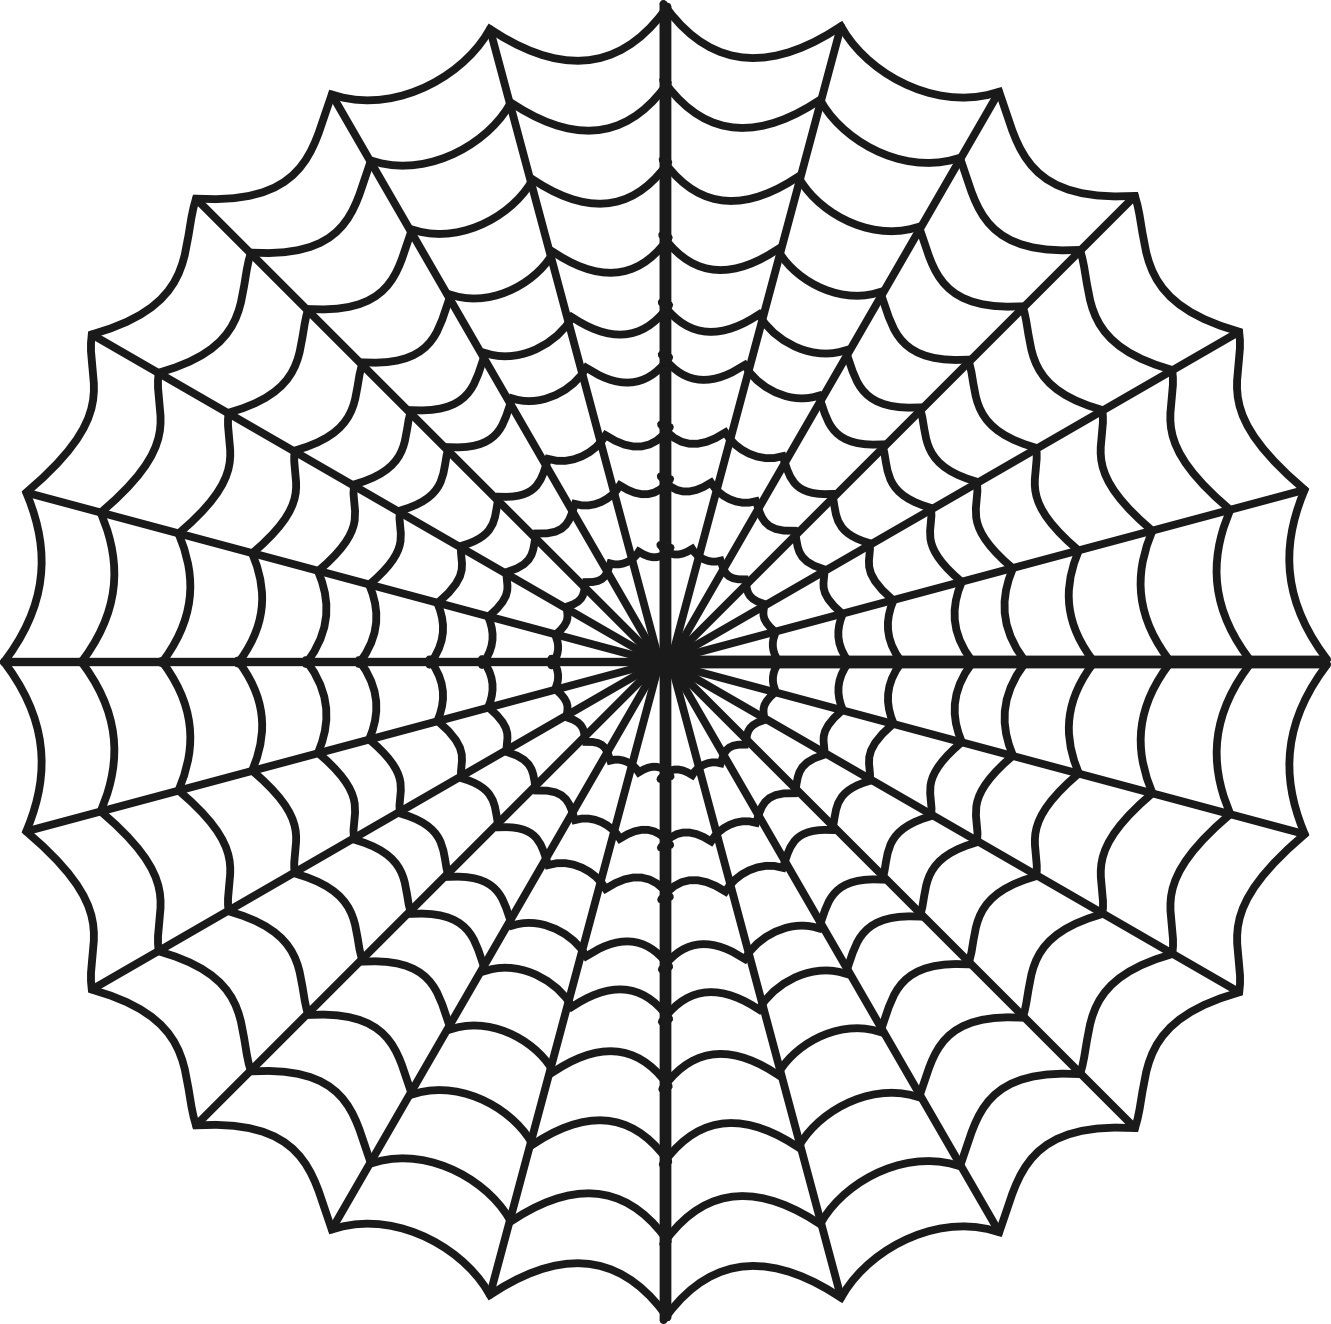 Free Printable Spider Web Coloring Pages For Kids Geometric